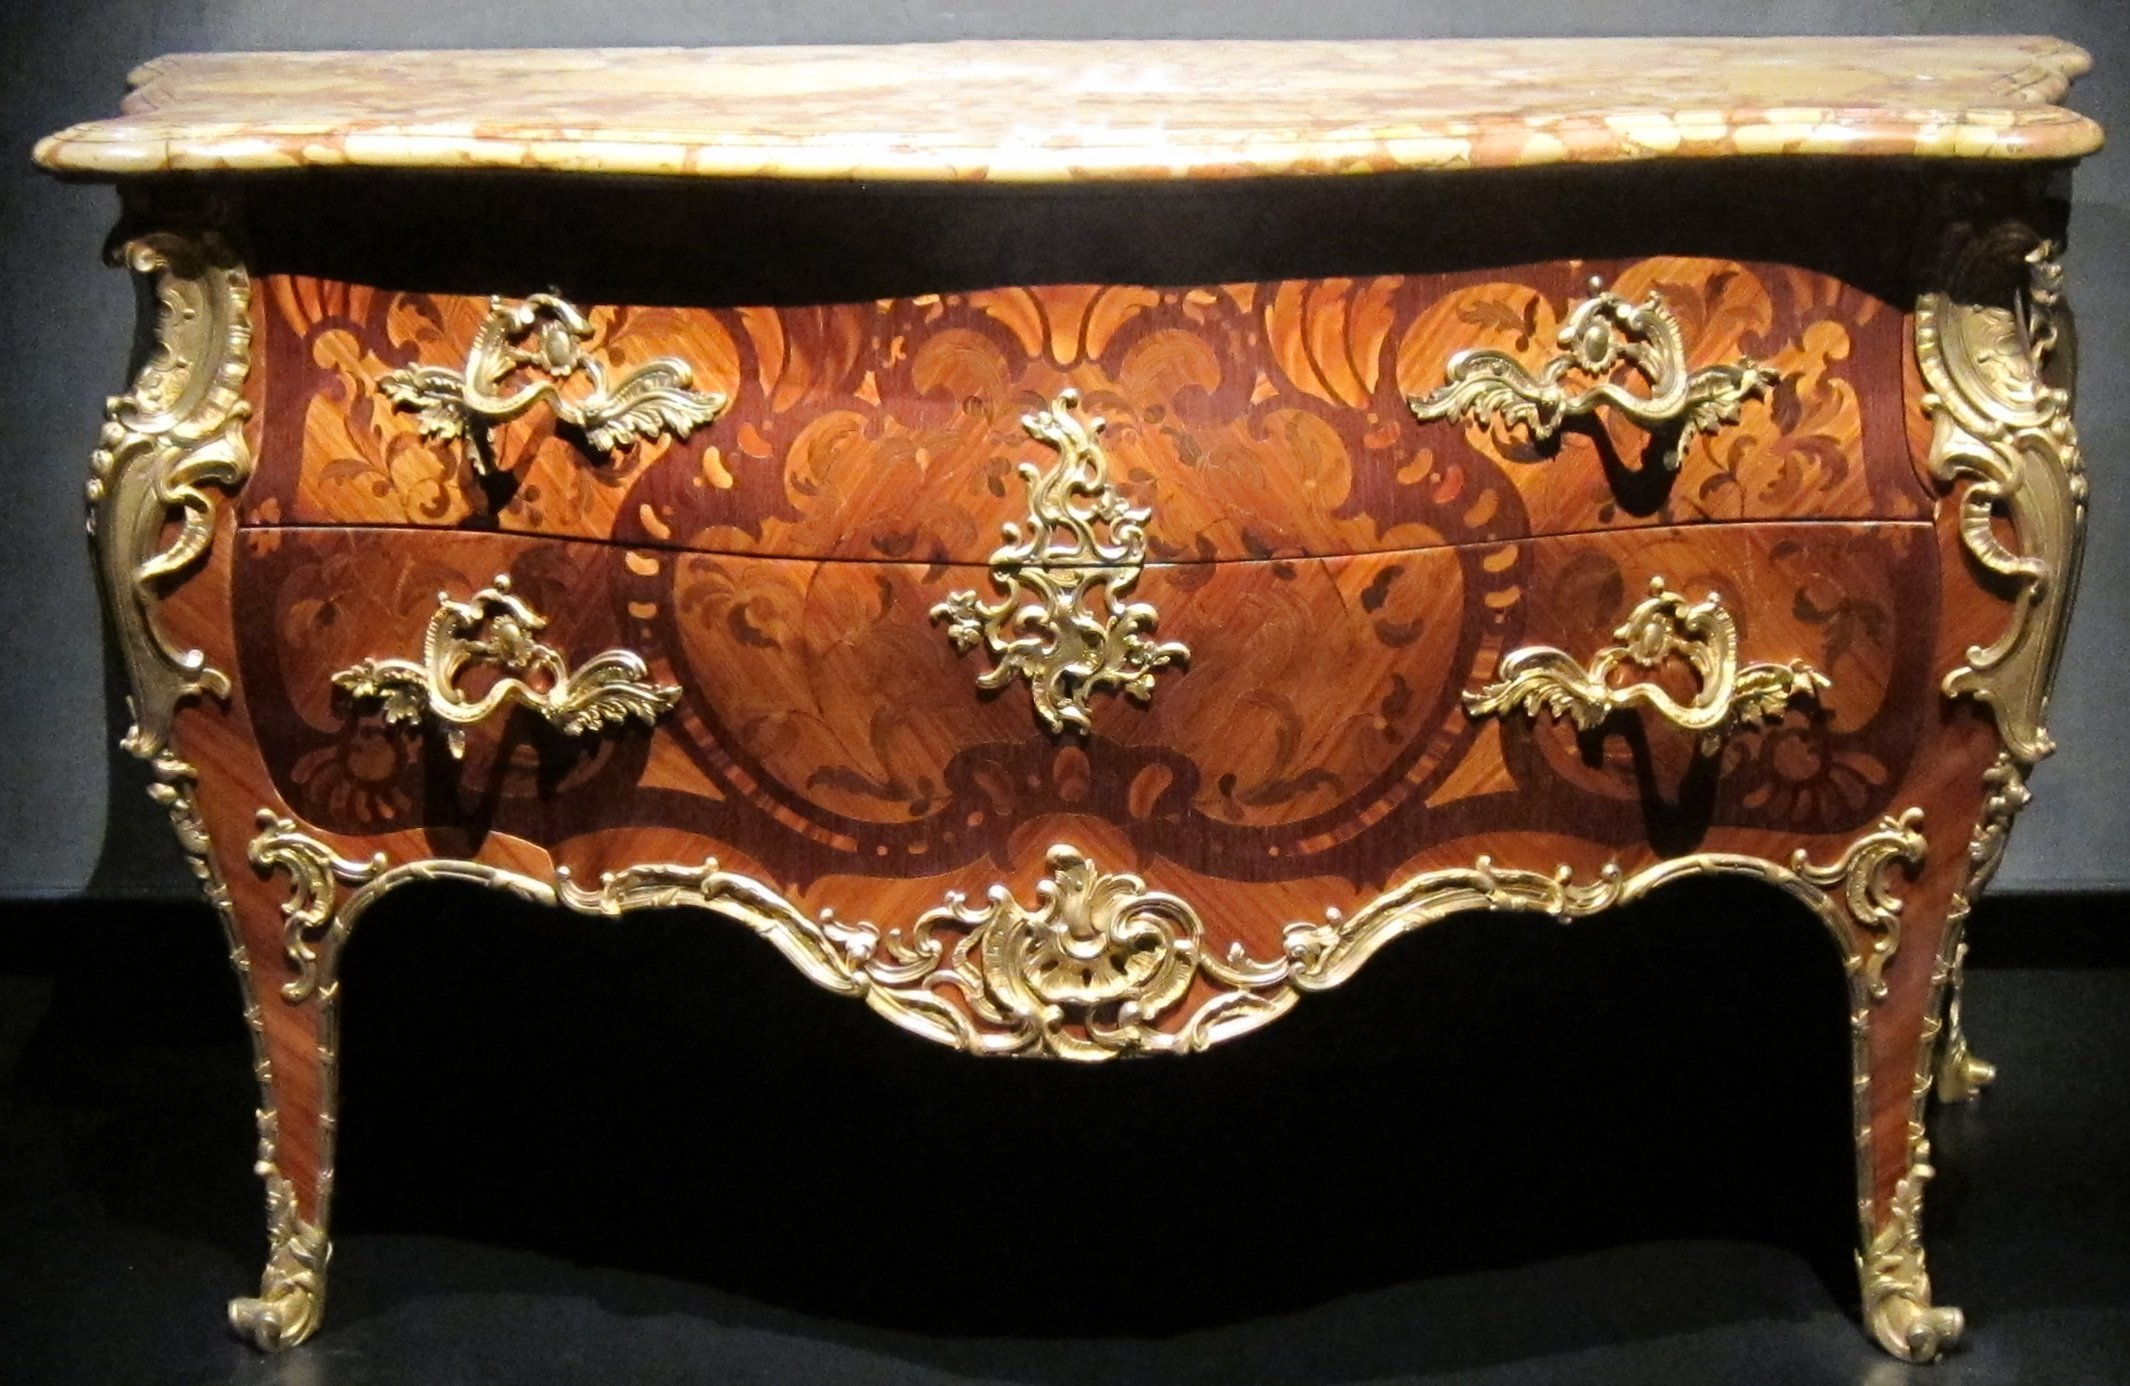 Note how the marble complements but does not distract from the Louis XV commode.